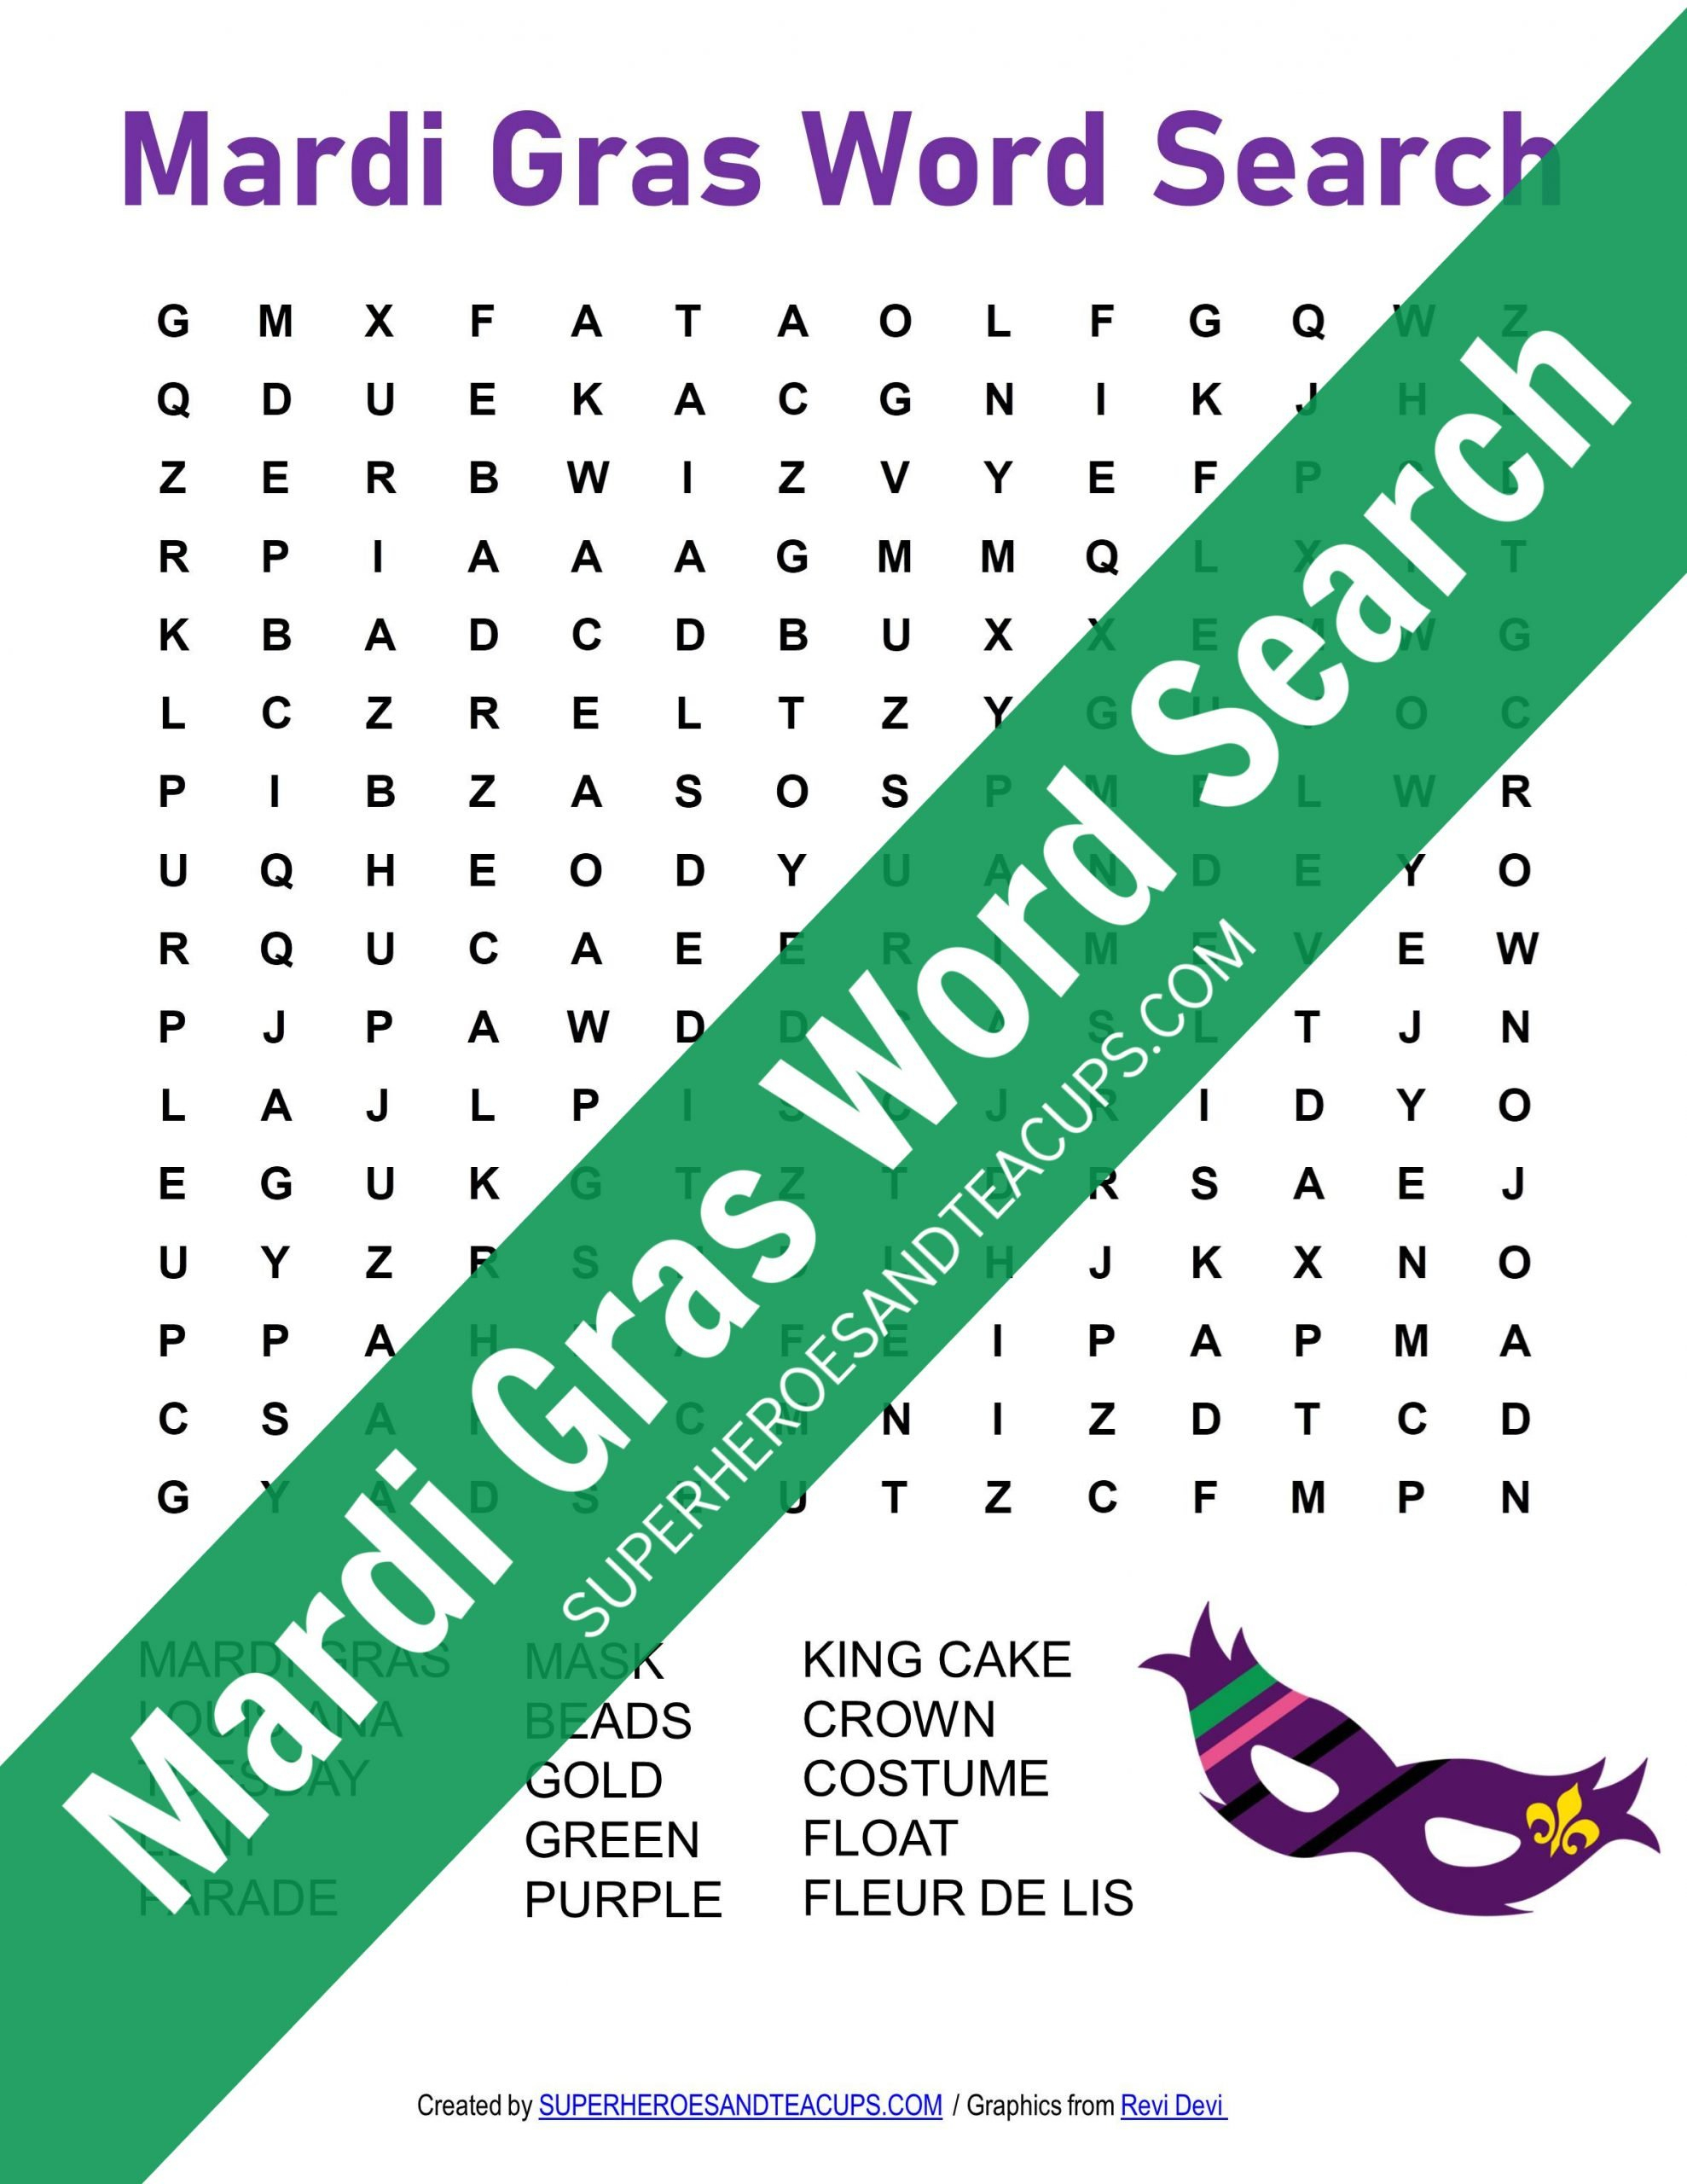 Mardi Gras Word Search Free Printable | Superheroes And Teacups